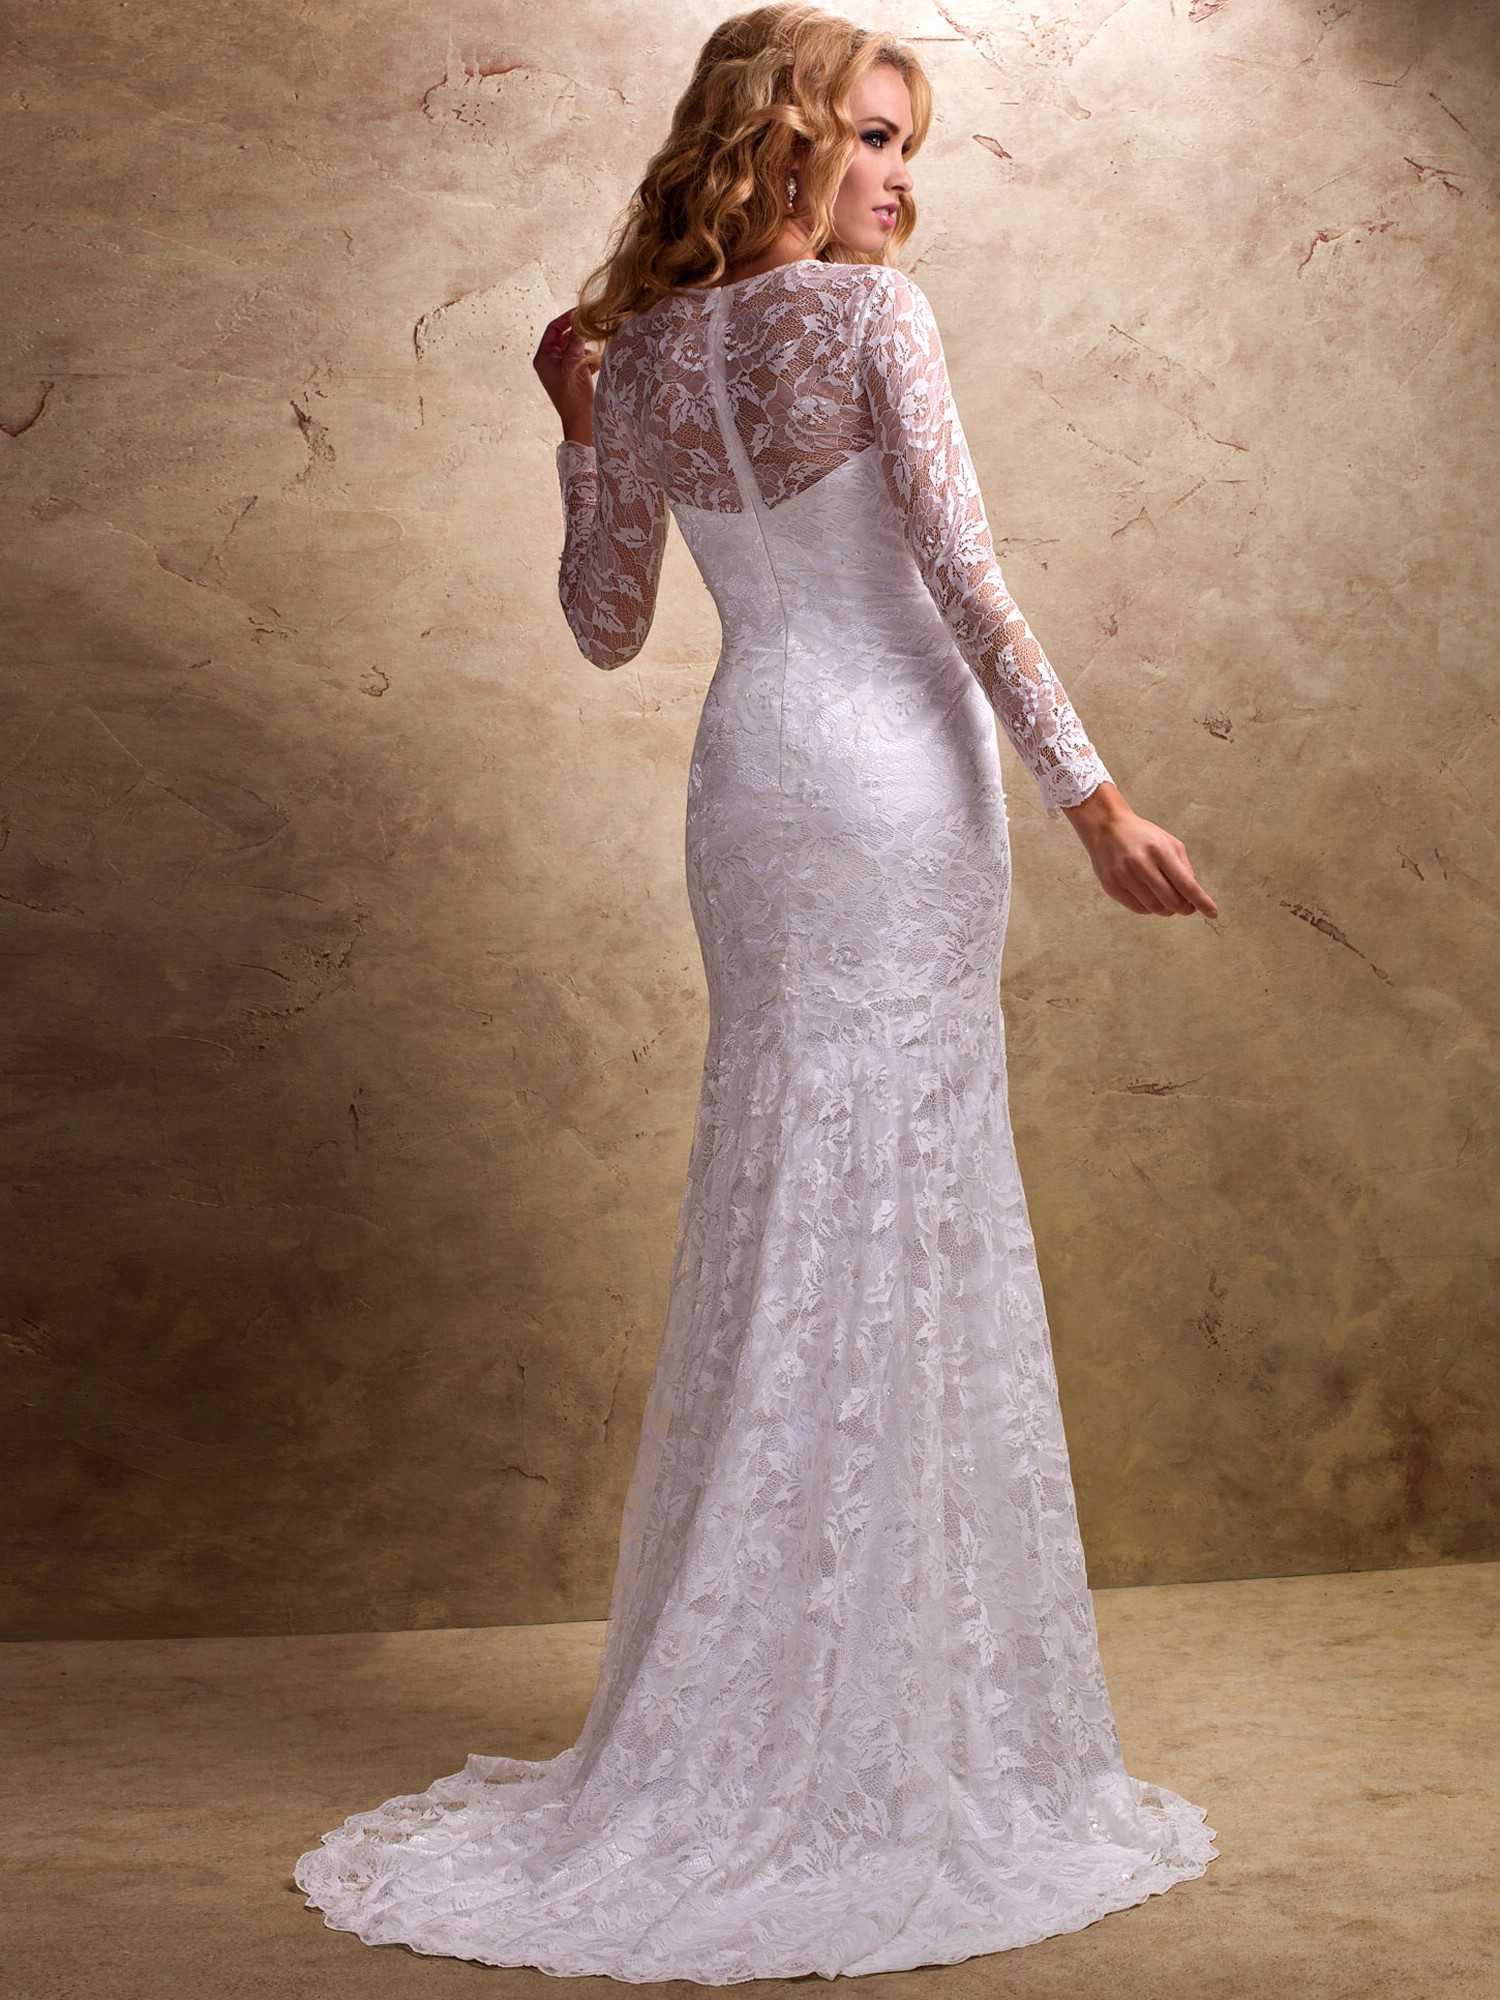 Top 10 2013 wedding dress style sleeves 2 wedding for Best wedding dresses with sleeves